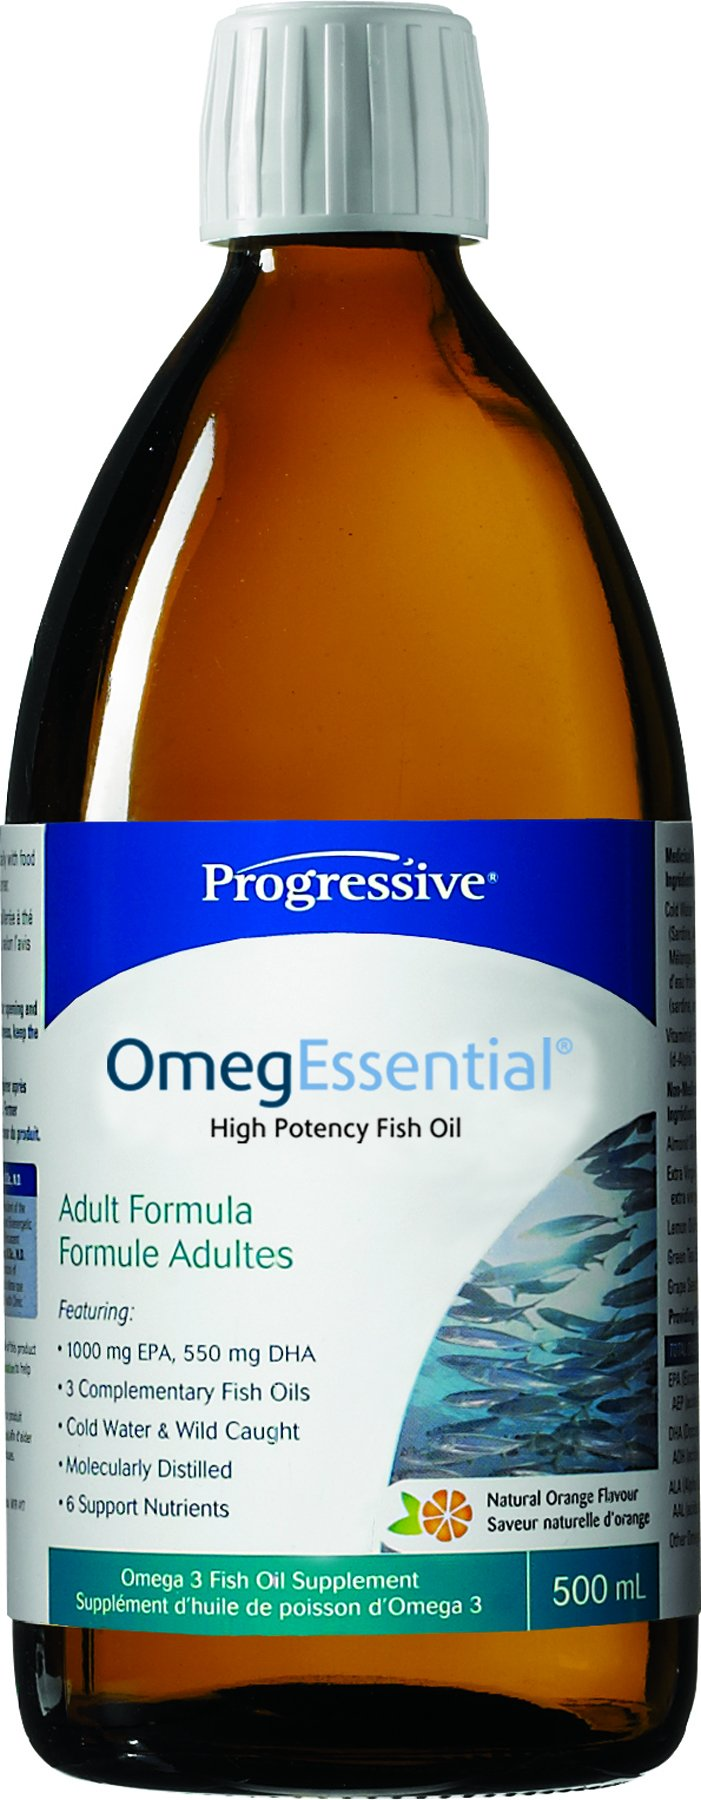 Progressive OmegEssential Fish Oil, 500 ml